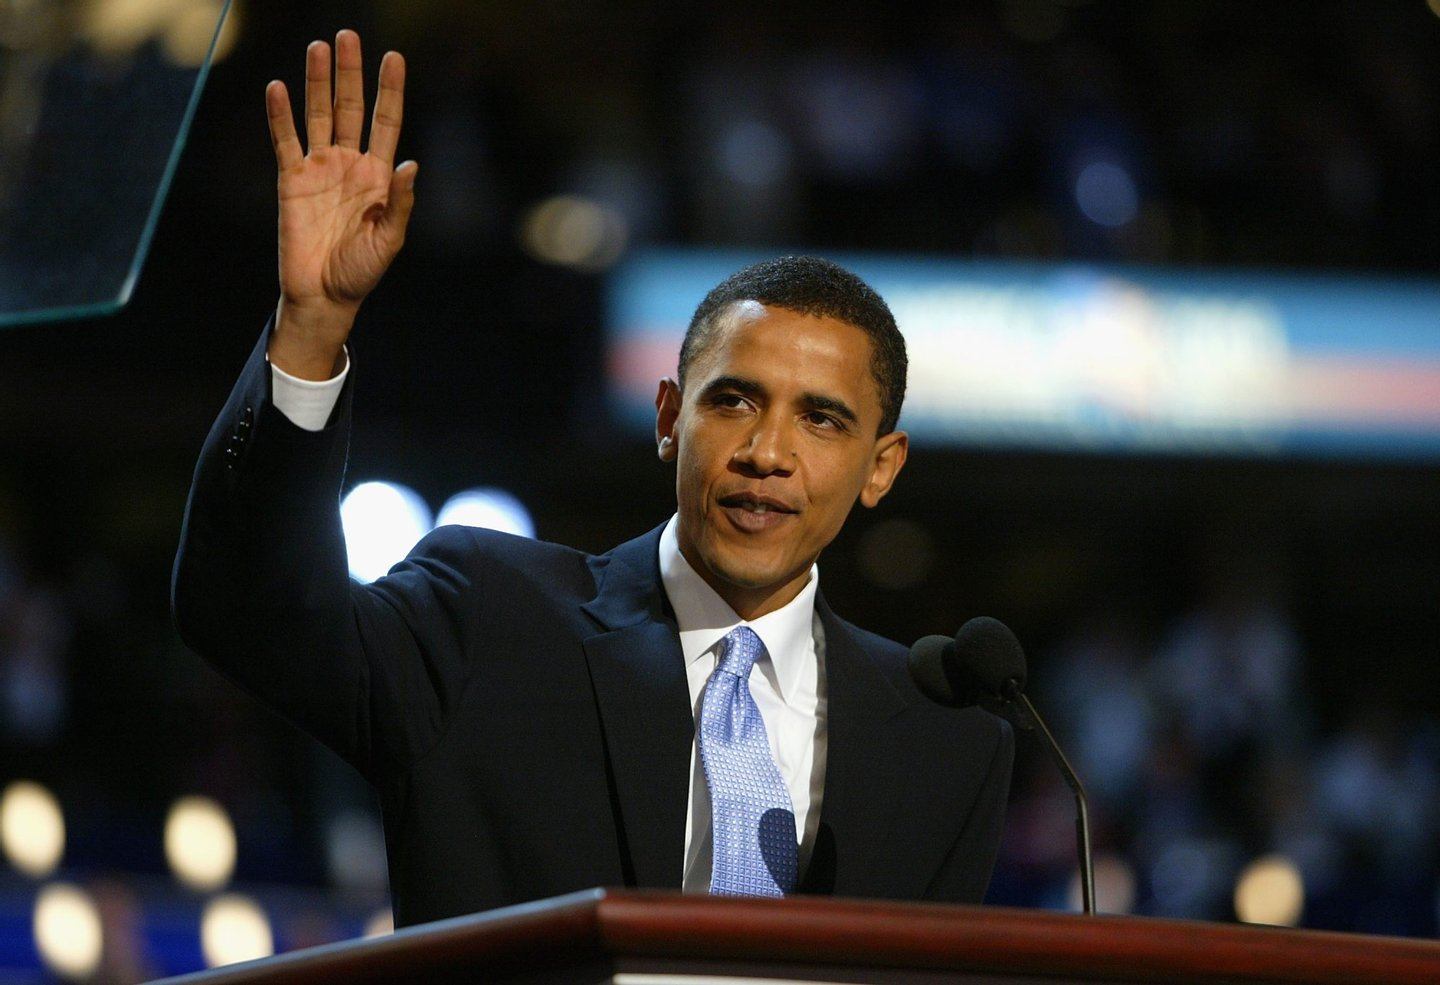 BOSTON - JULY 27: U.S. Senate candidate Barack Obama of Illinois delivers the keynote address to delegates on the floor of the FleetCenter on the second day of the Democratic National Convention July 27, 2004 in Boston, Massachusetts. (Photo by Spencer Platt/Getty Images)